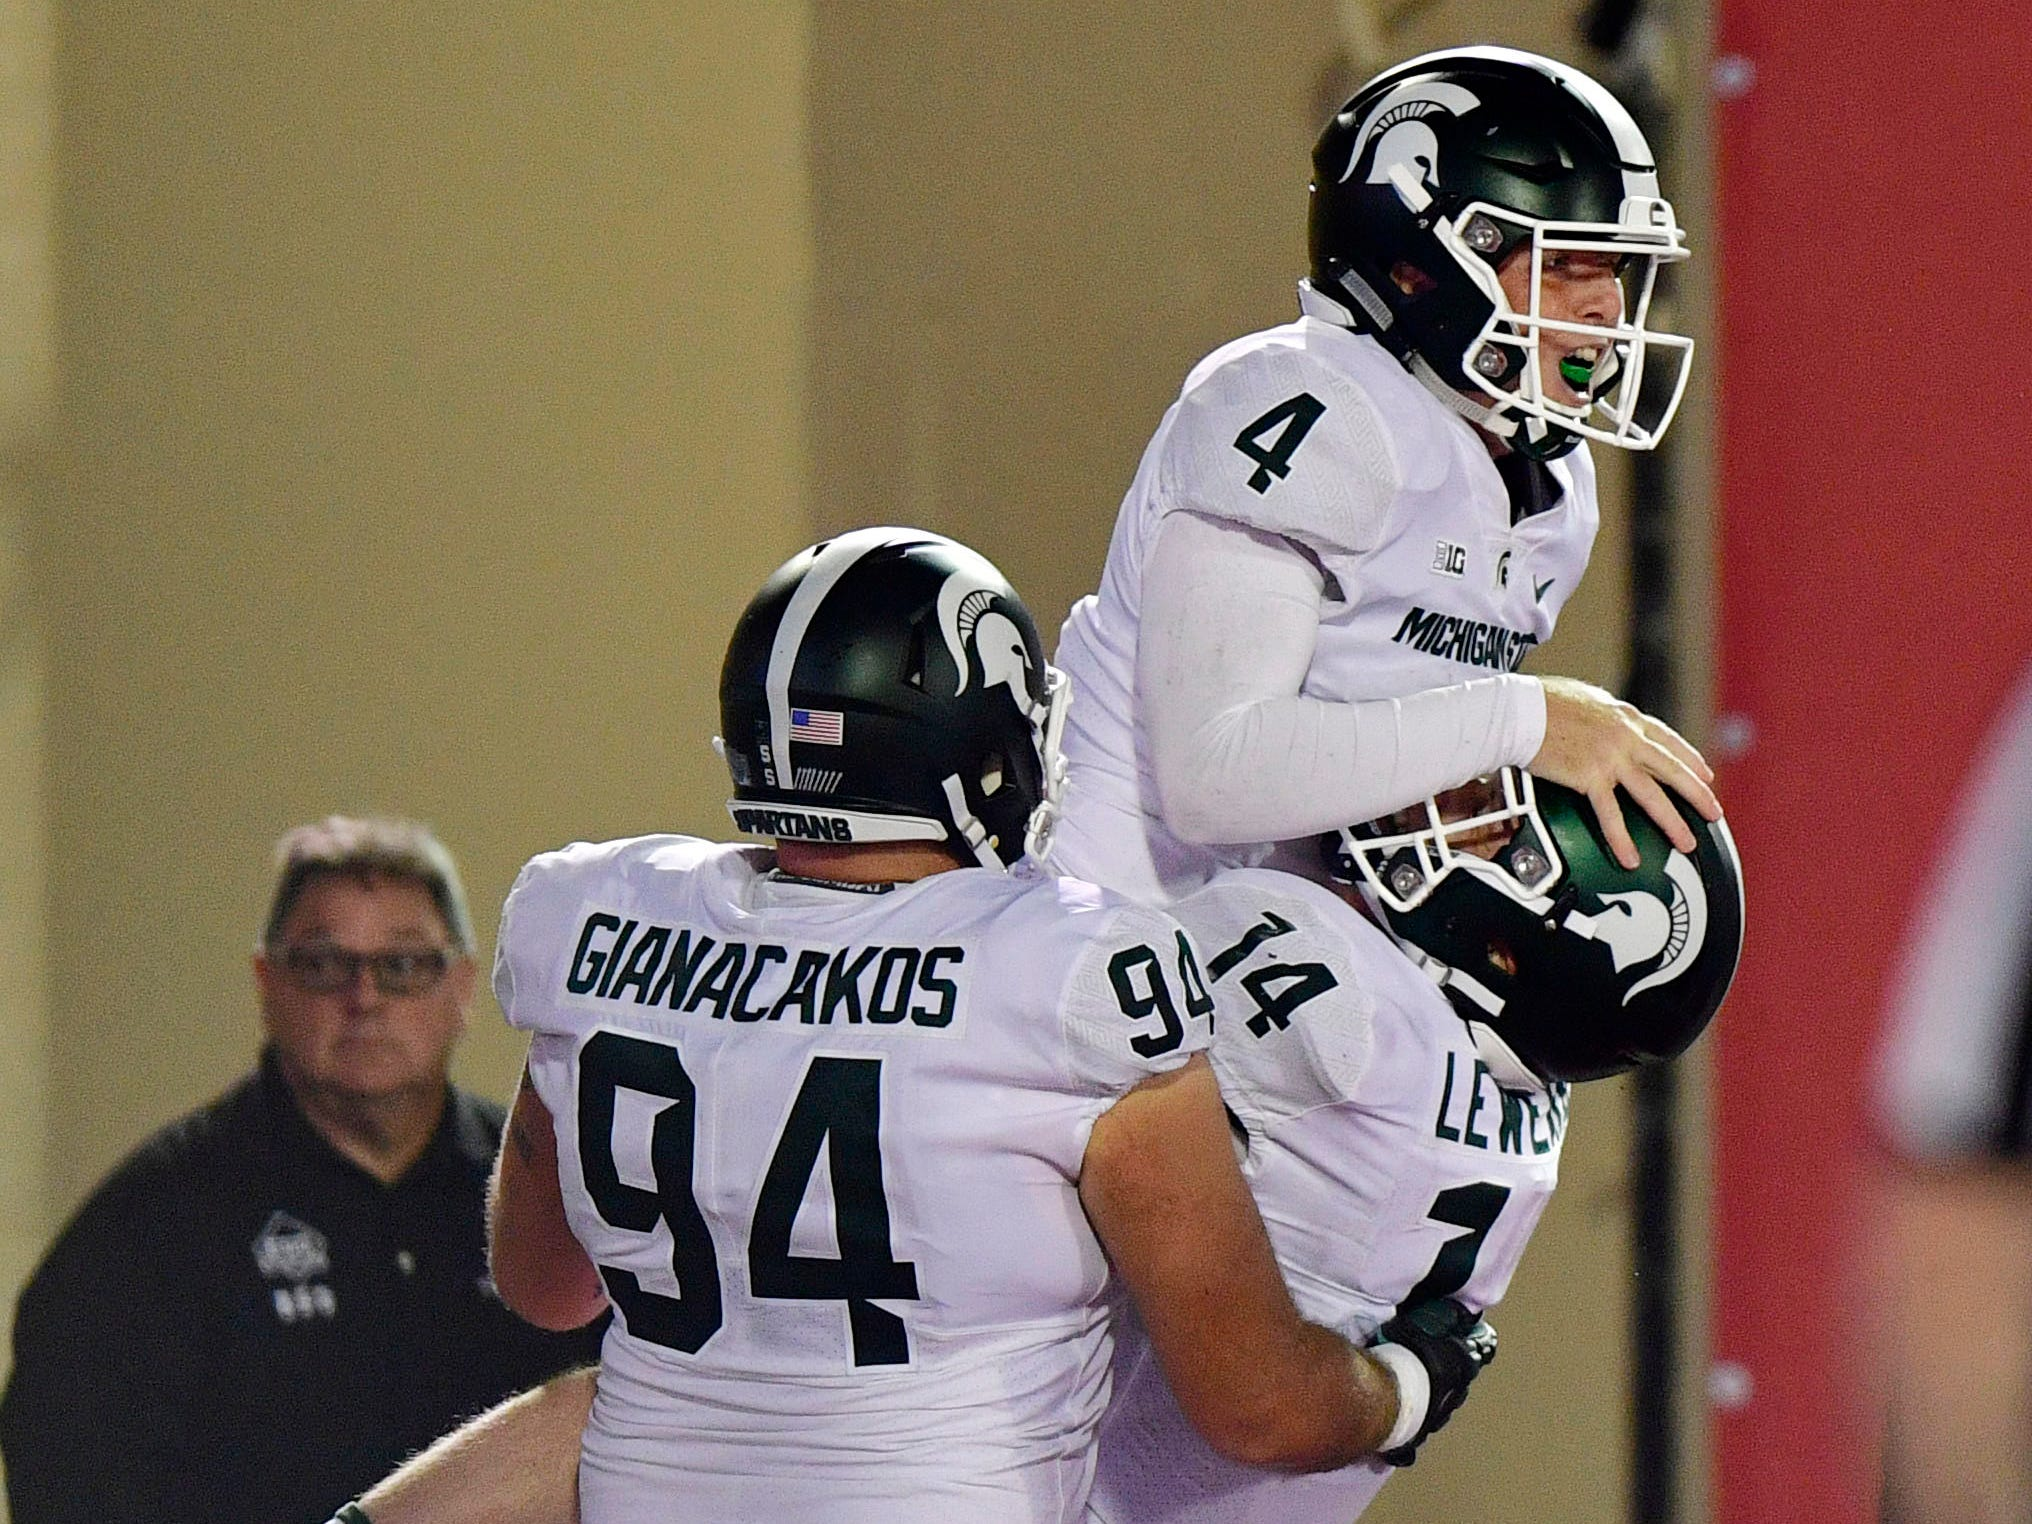 Michigan State Spartans wide receiver C.J. Hayes (4) jumps into the arms of quarterback Brian Lewerke (14) with tight end Chase Gianacakos (94) in celebration during the second half of the game against Indiana at Memorial Stadium. The Michigan State Spartans defeated the Indiana Hoosiers 35 to 21.